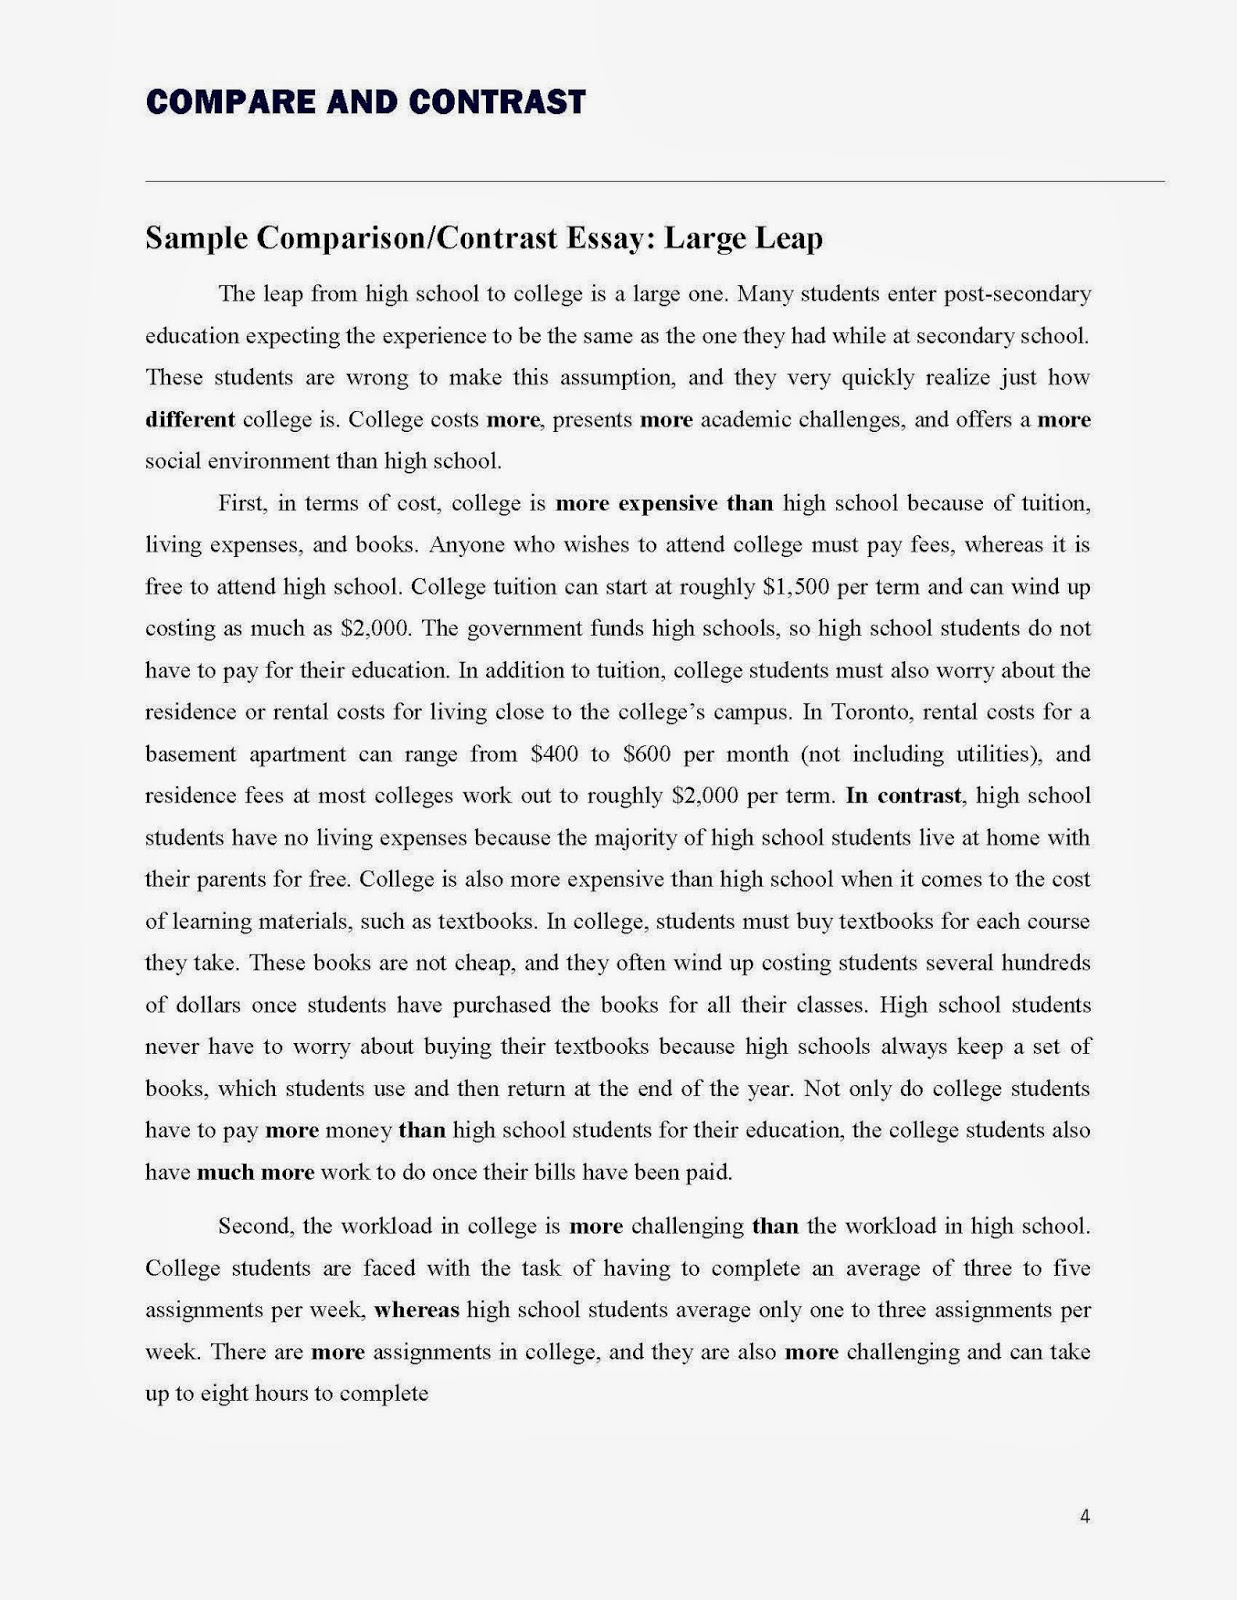 Compare and contrast 9th grade essay examples